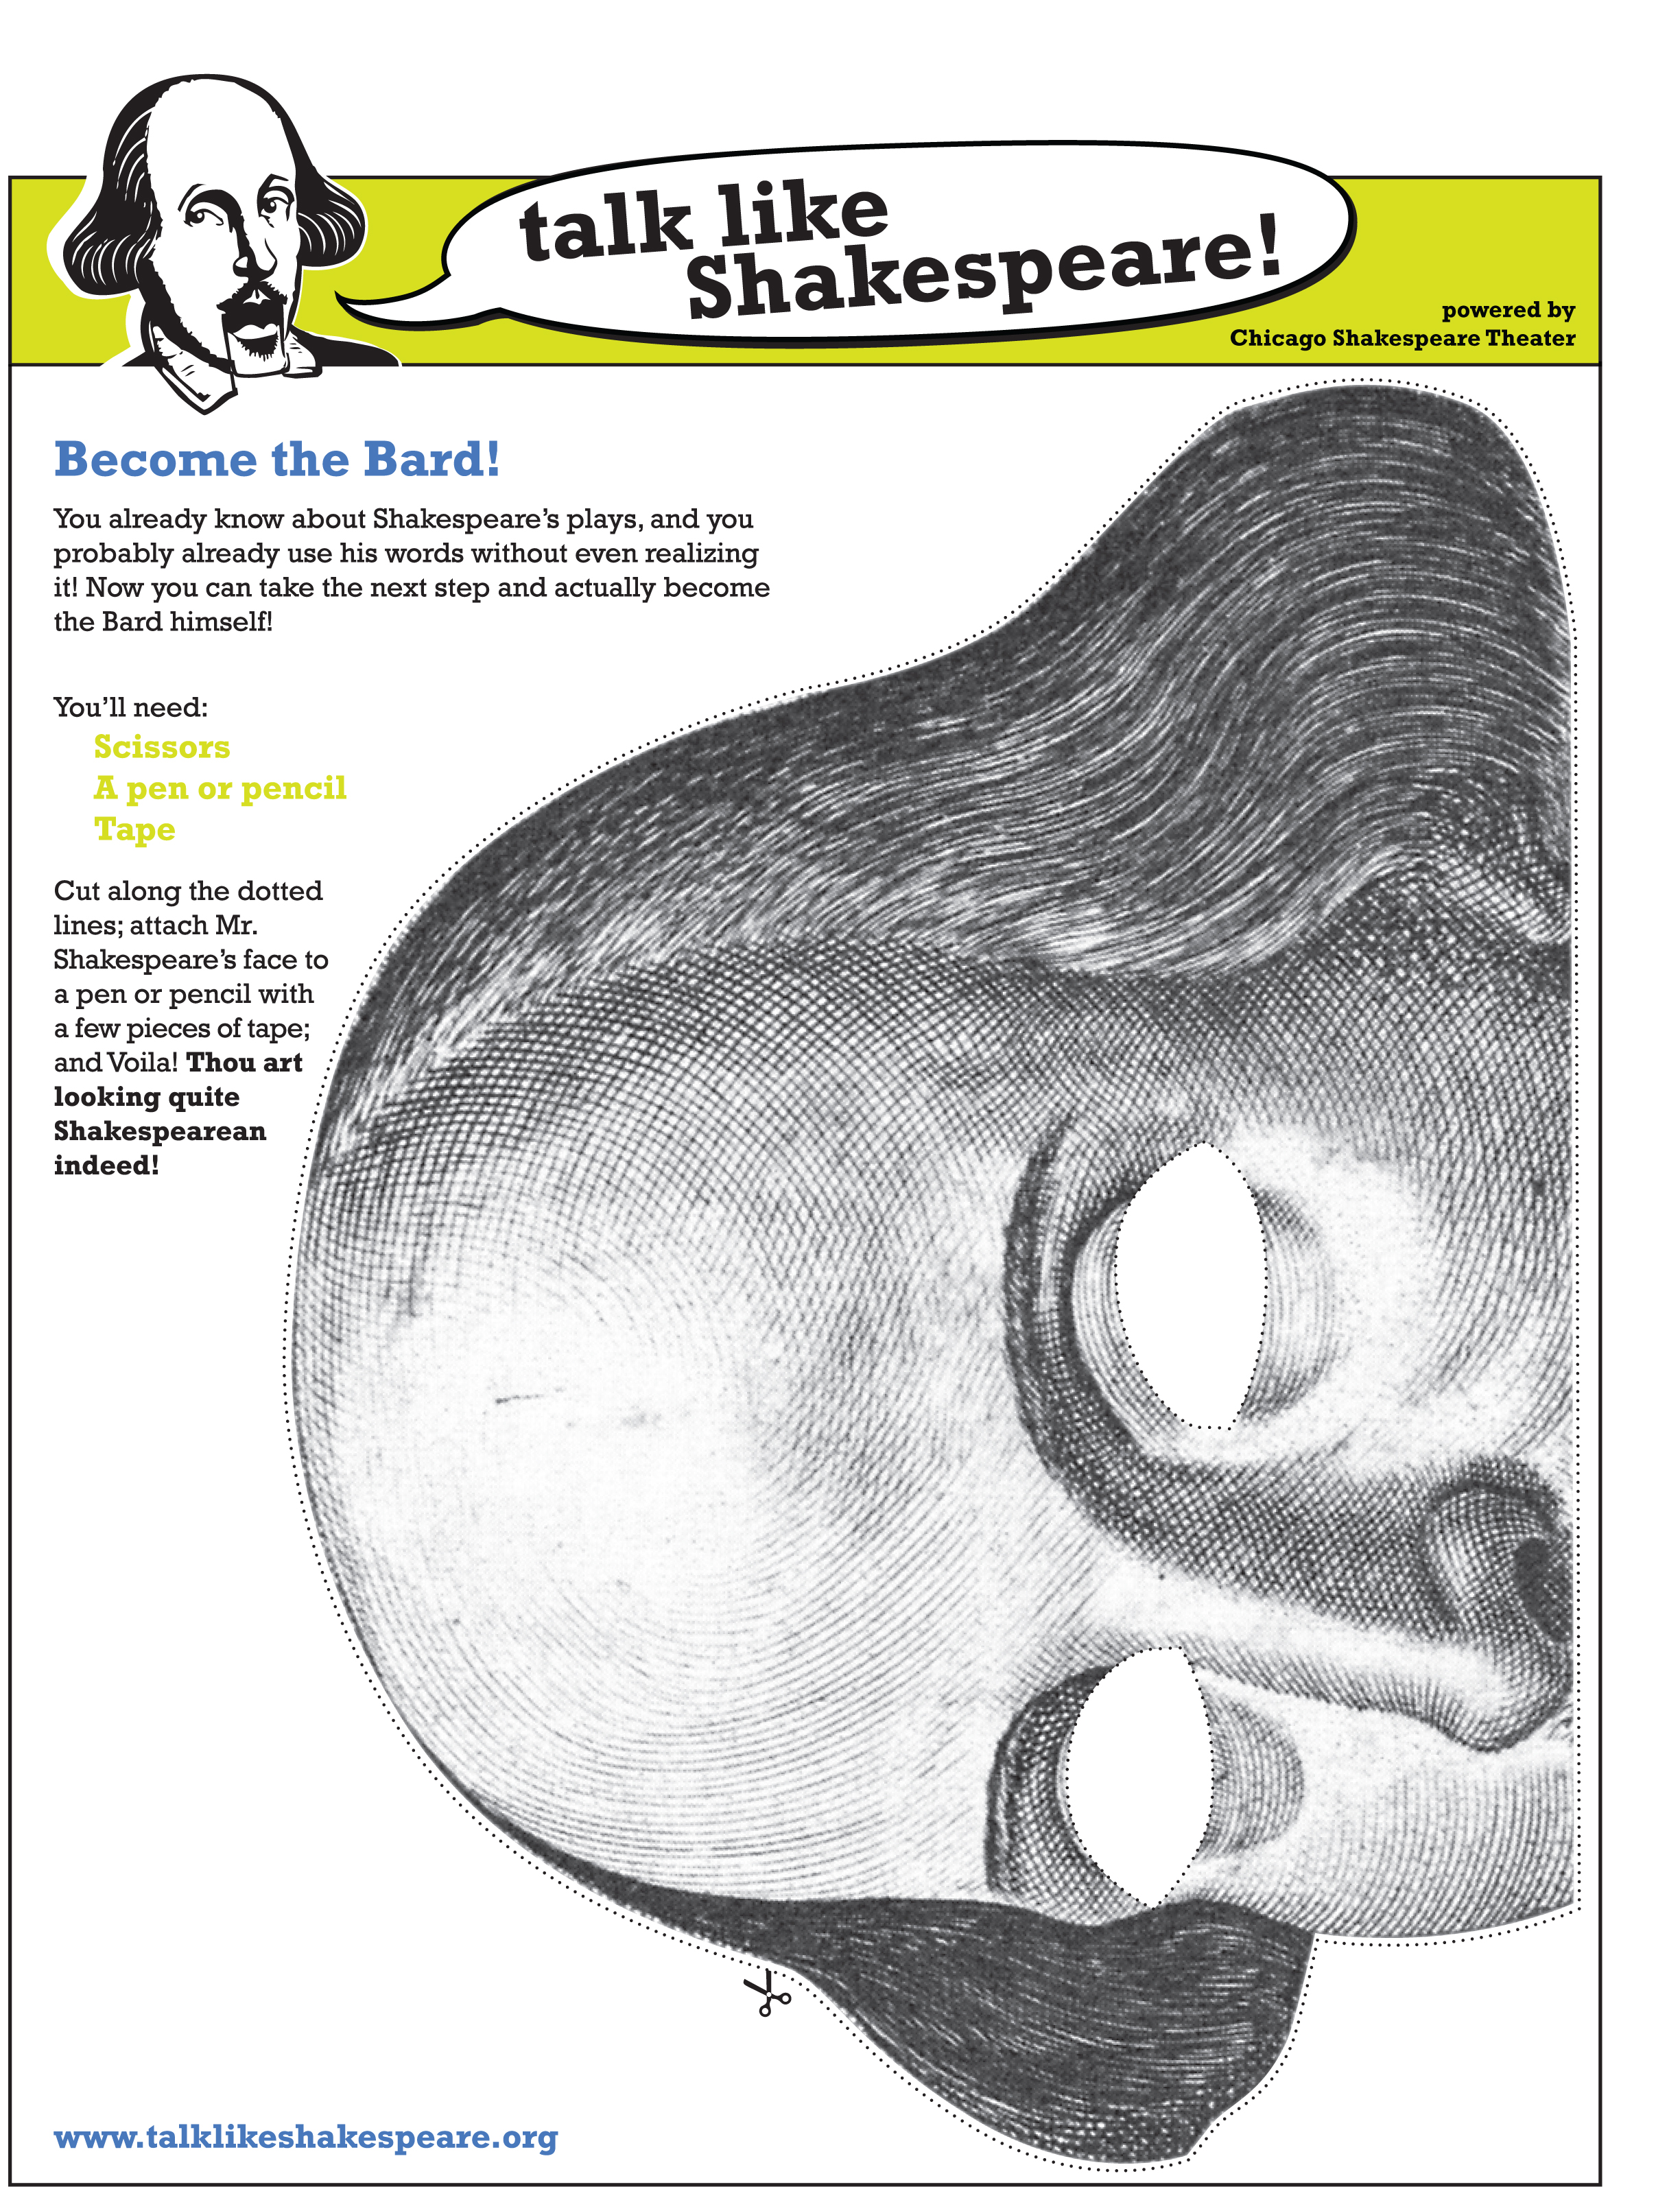 the mask of falseness in hamlet by william shakespeare Hamlet notices ophelia, and greets her in verse at the tail end of his soliloquy   more validly, at which point for each of the pair do their masks go on and off  it  can lend sincerity or falsehood to hamlet's proclamations of love at ophelia's  grave it can add  shakespeare, william, and ann thompson.